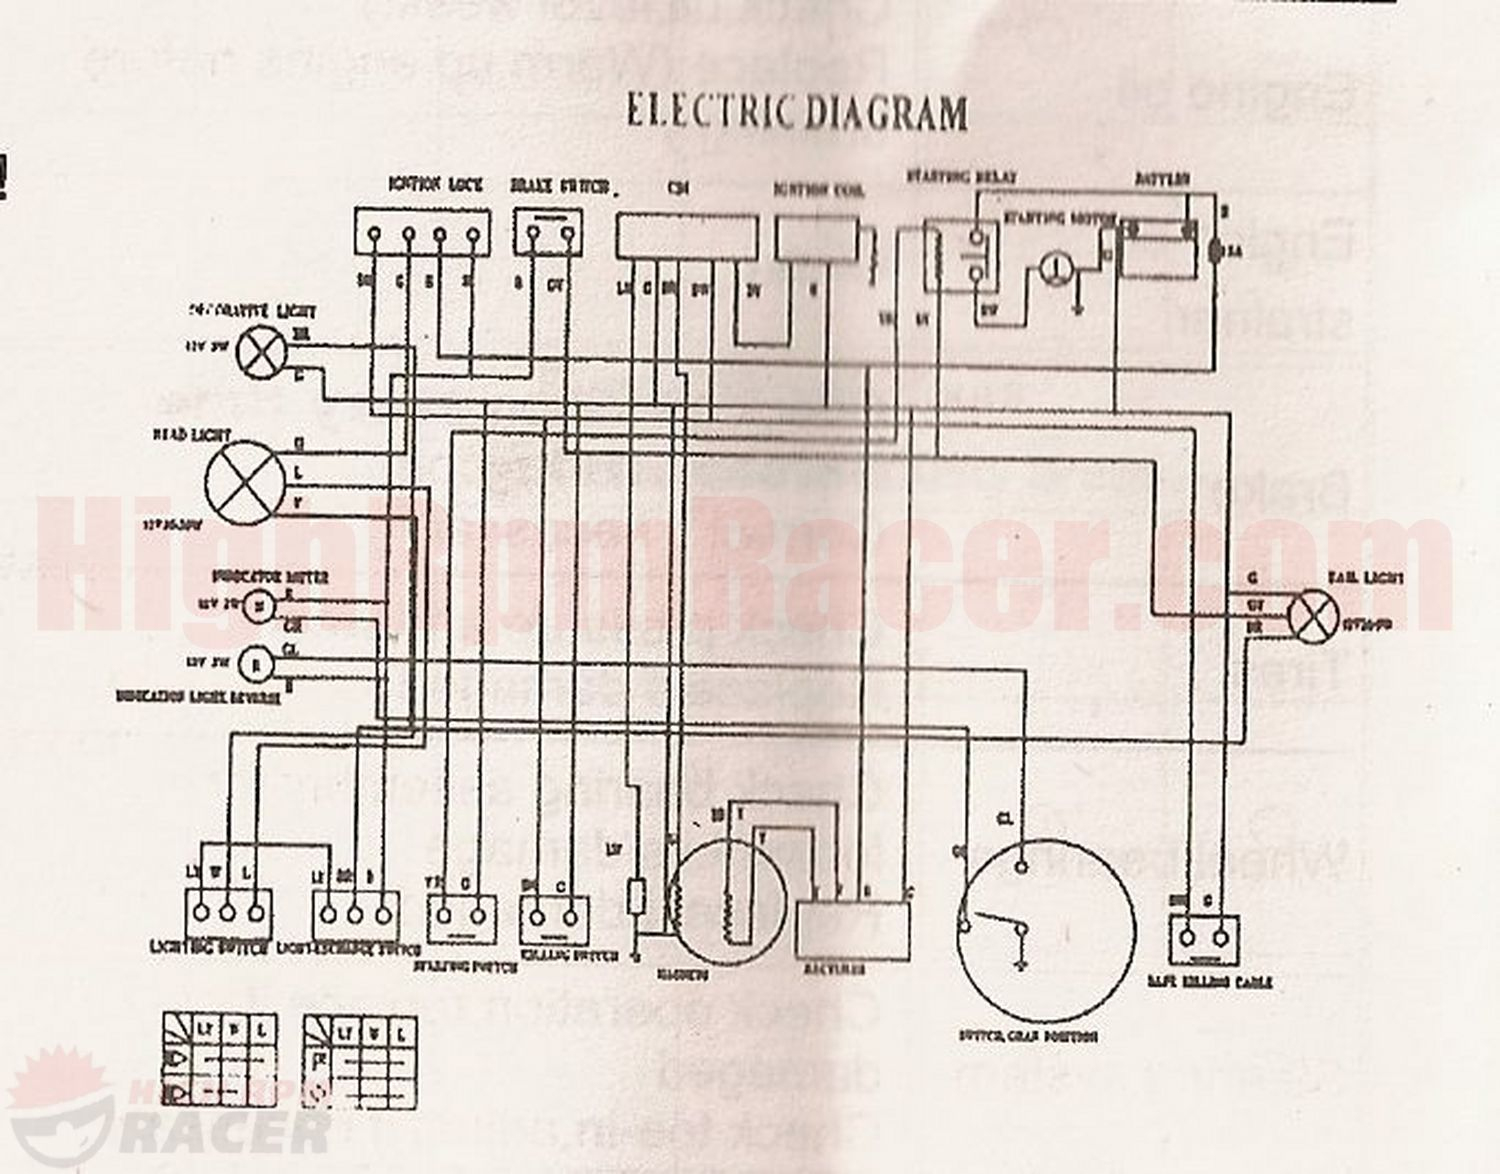 Taotao 49Cc Wiring Diagram | Wiring Library - Chinese Quad Wiring Diagram